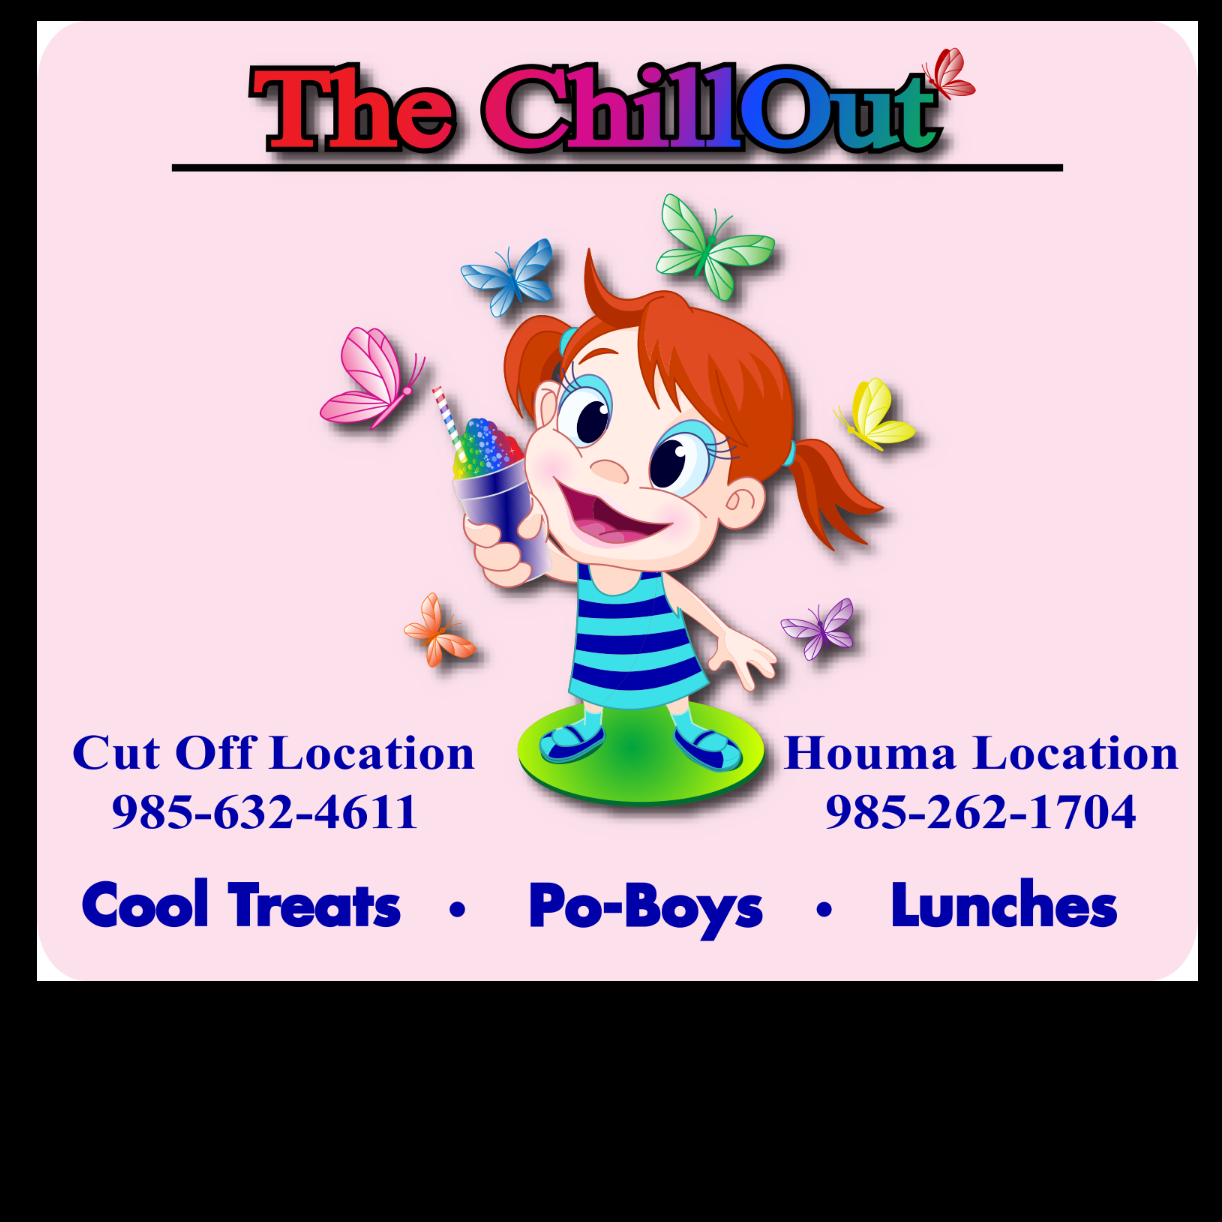 The ChillOut II, Houma location